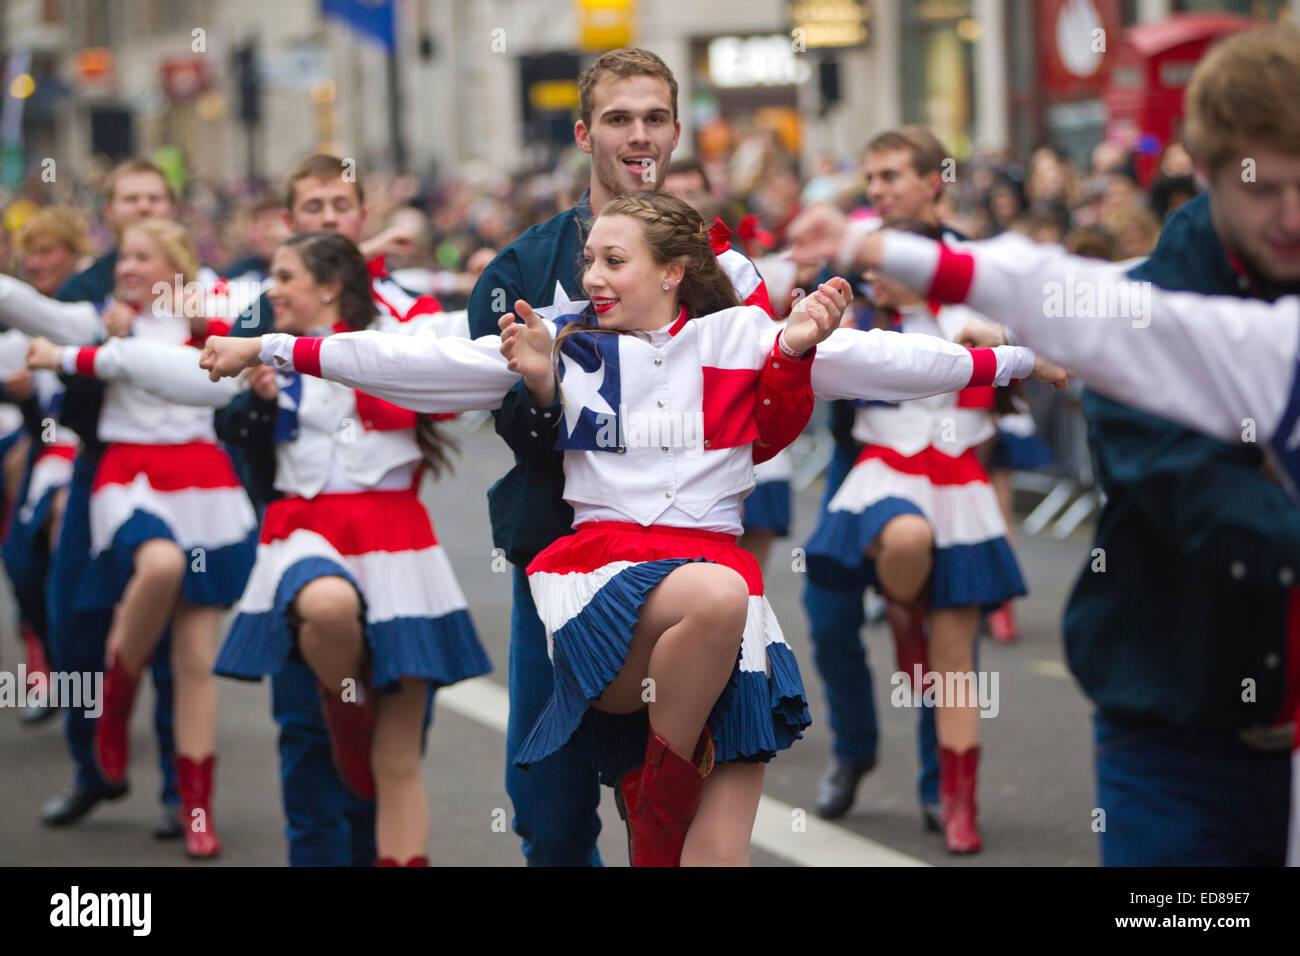 London, UK. 1st January, 2015. London's New Year's Day Parade 2015, London, England, UK Performers from - Stock Image